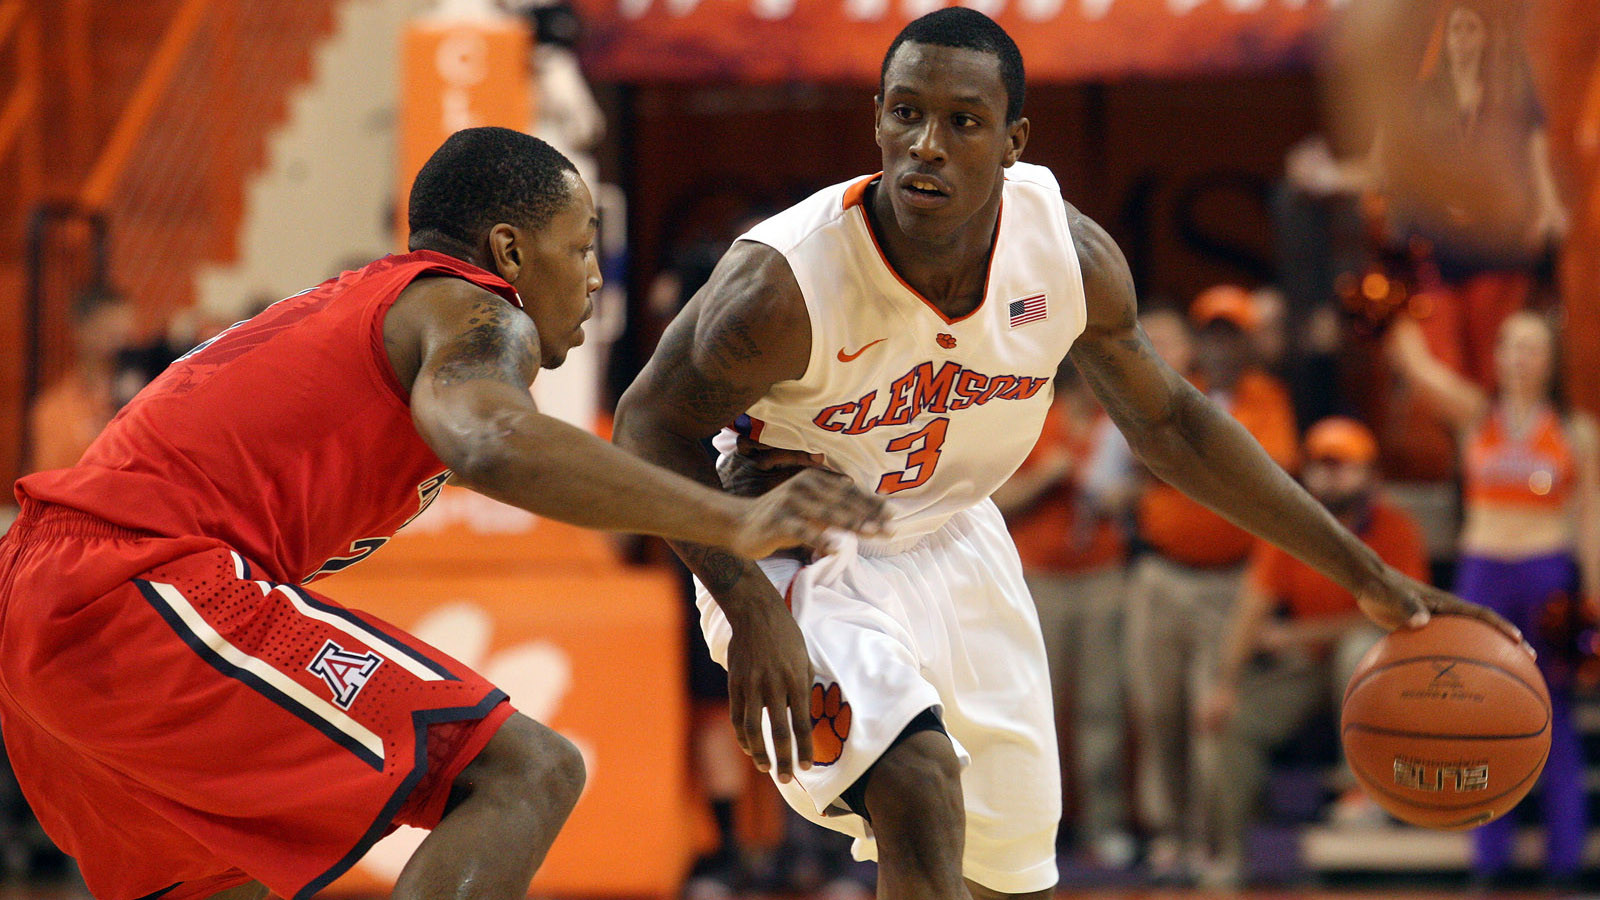 Exclusive: Young Tiger Team Eager to tip off ACC Regular Season